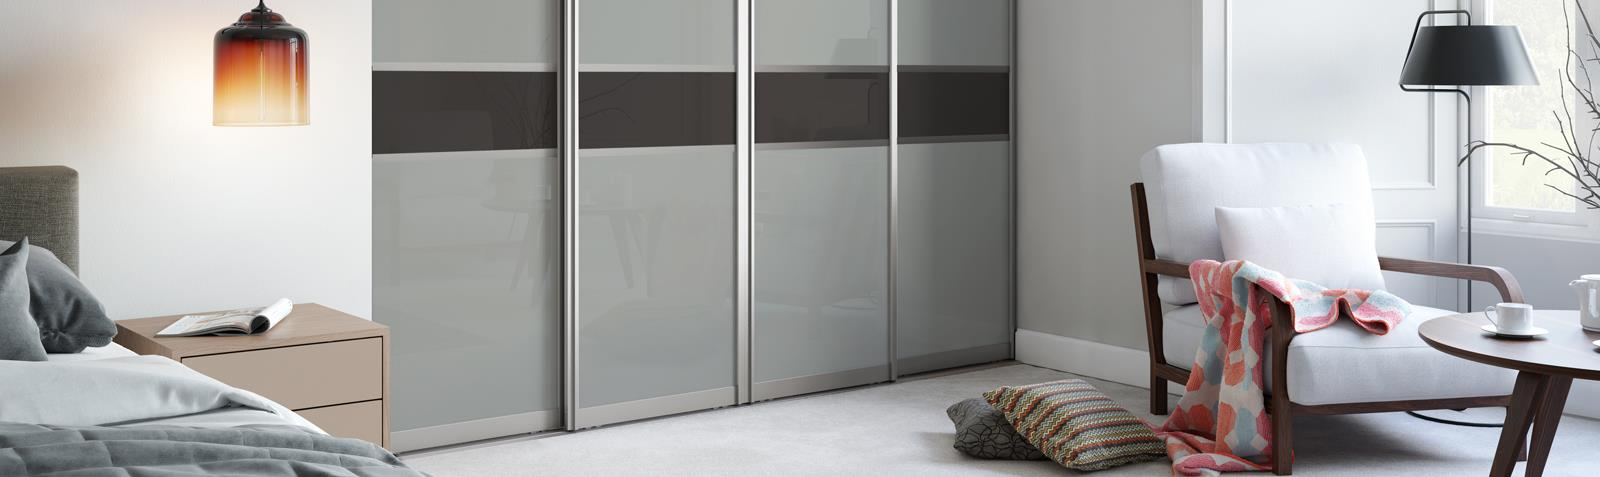 Signature 3 panel Fineline Light Grey glass / Dark Grey glass doors with Titanium frame | Spaceslide & Signature: 3 panel Fineline Light Grey glass / Dark Grey glass doors ...